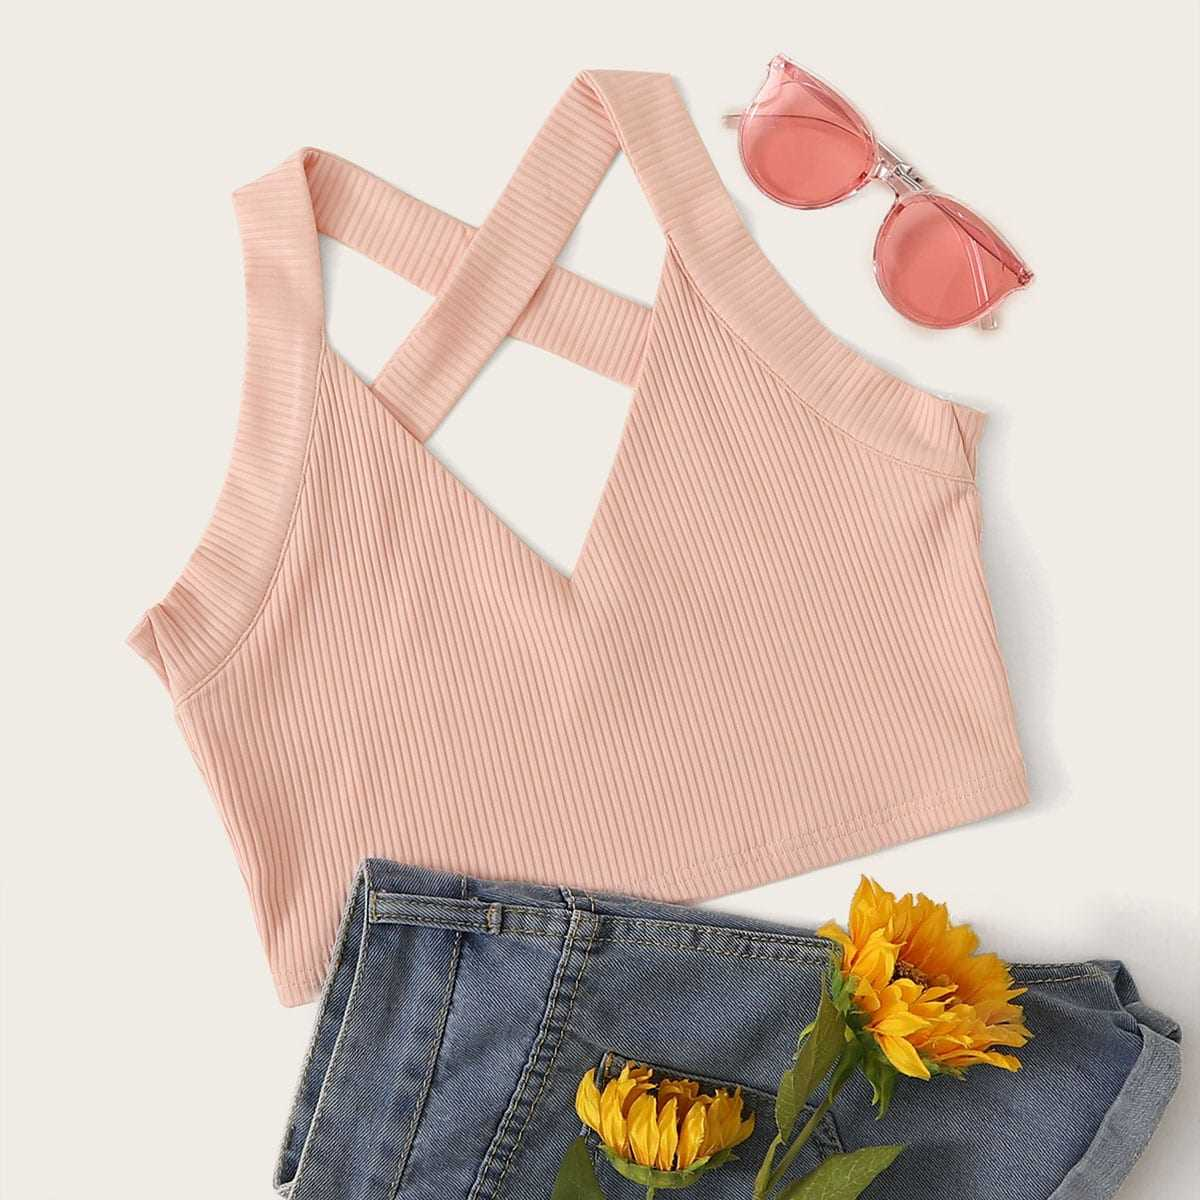 Criss Cross Rib-knit Cami Top in Pink by ROMWE on GOOFASH